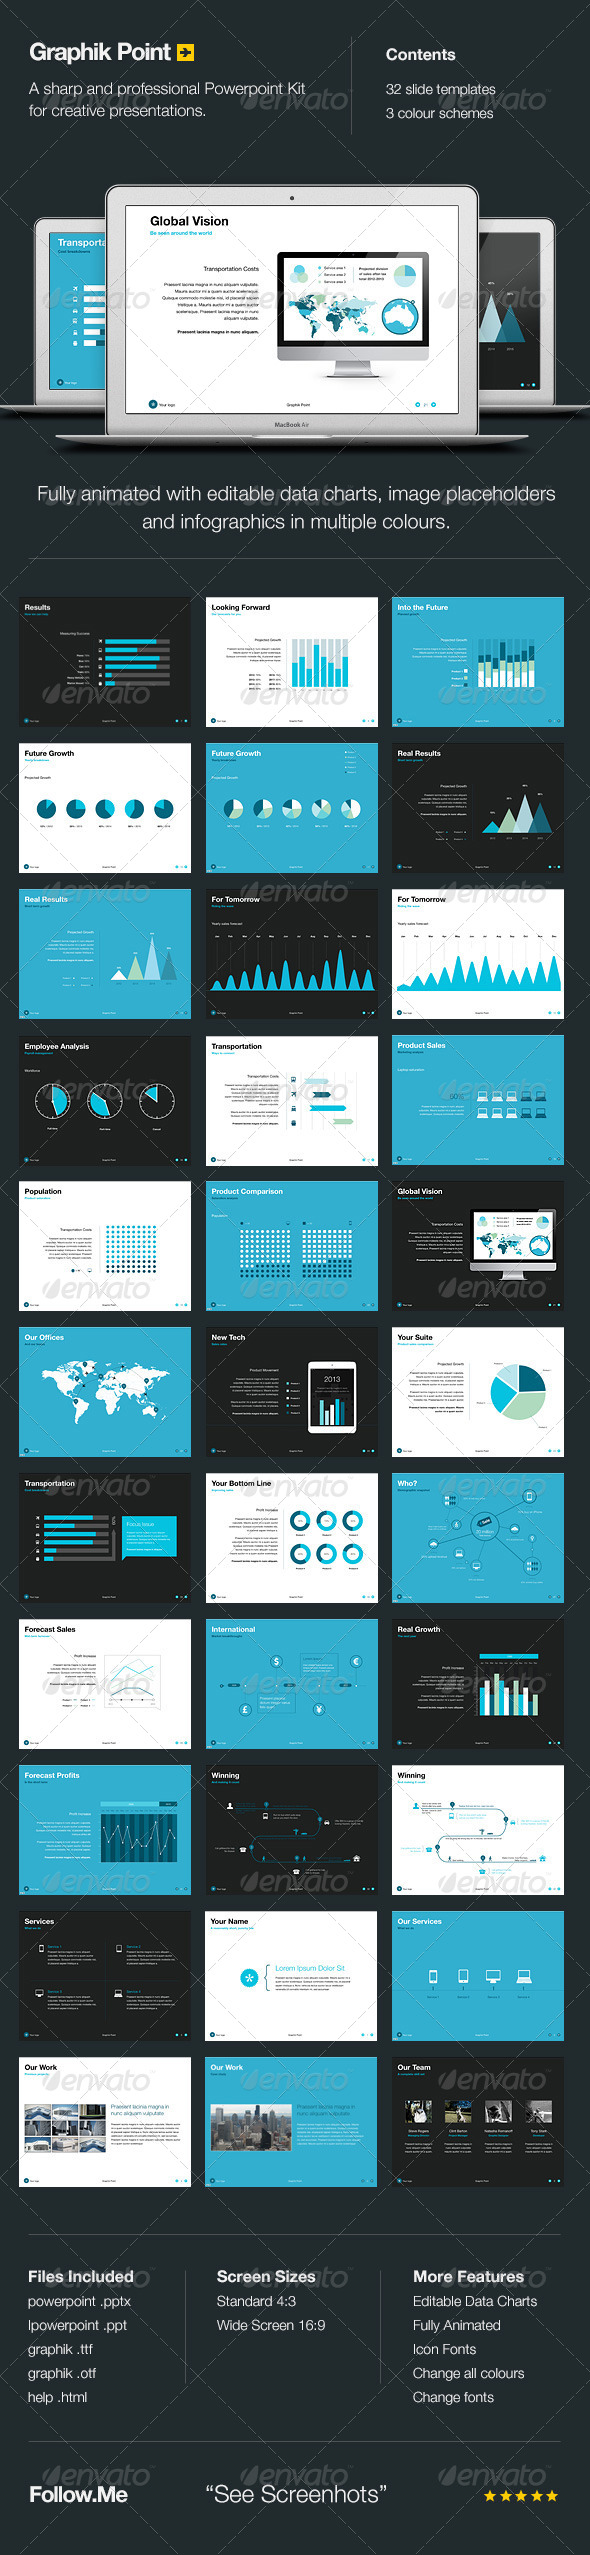 Graphik Point - Powerpoint Presentation - Powerpoint Templates Presentation Templates